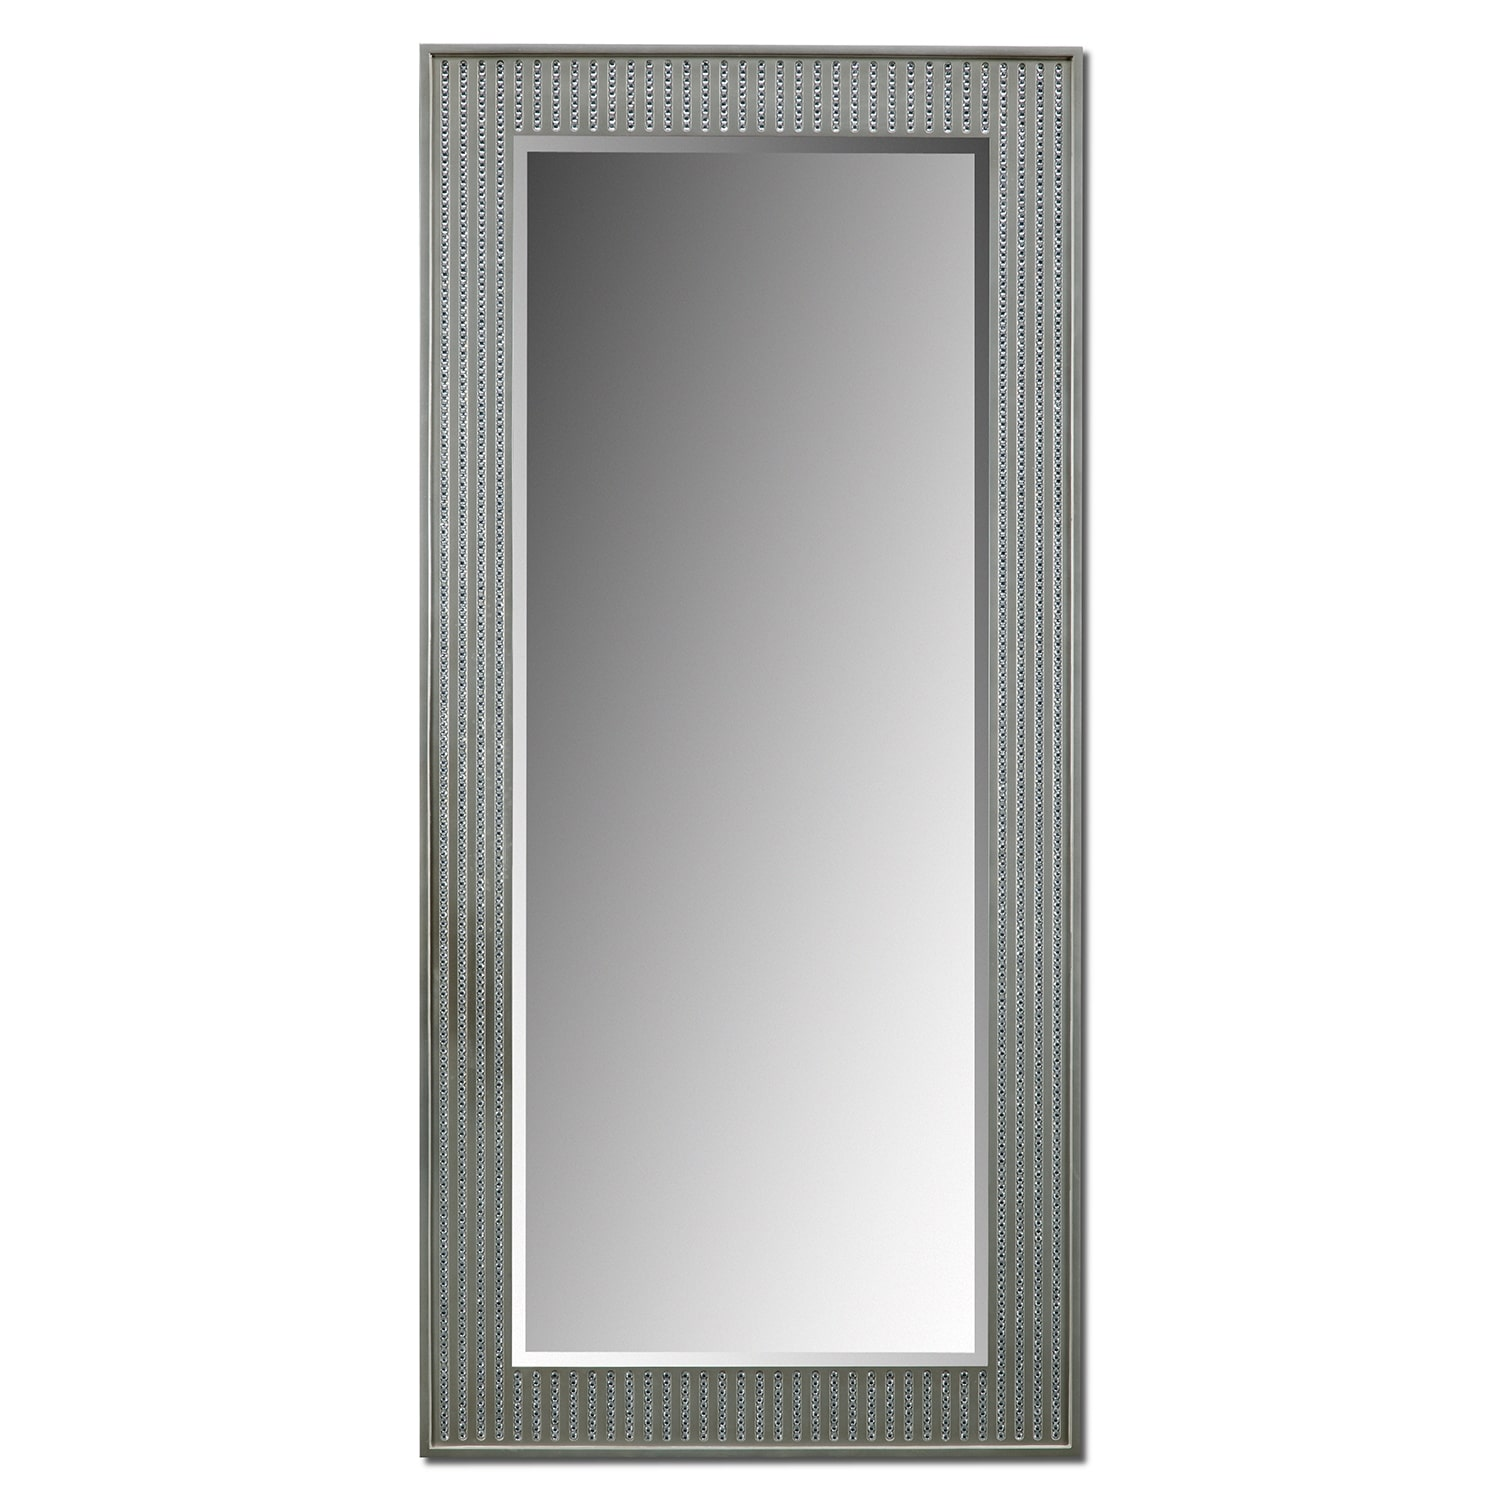 Home Accessories - Bling Glam II Mirror